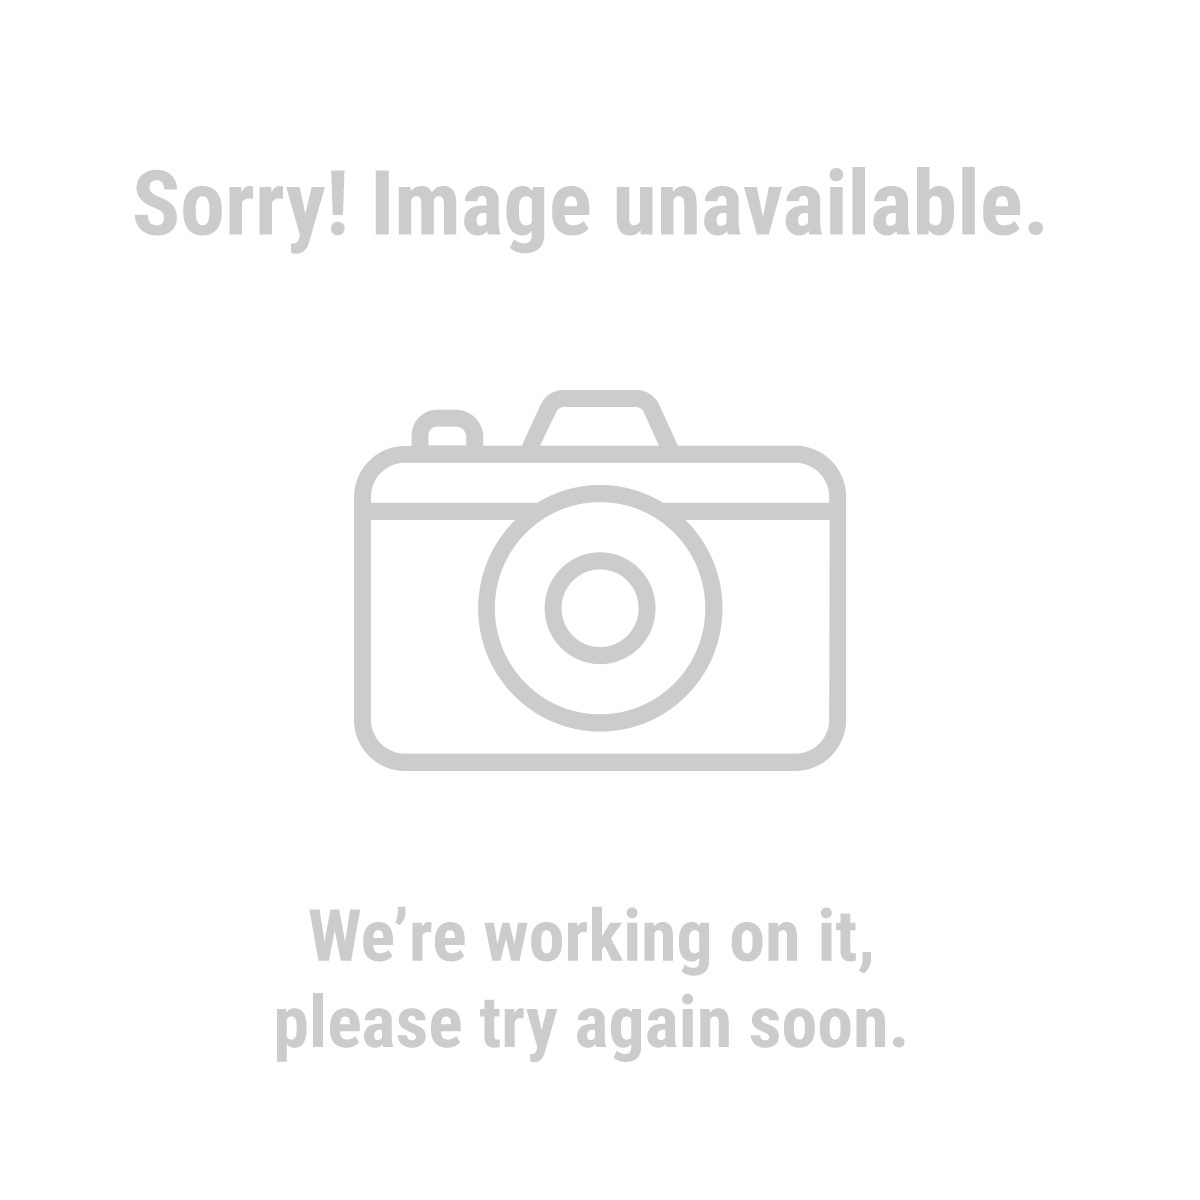 harbor freight wood lathe. 8 in. 5 speed bench drill press harbor freight wood lathe t